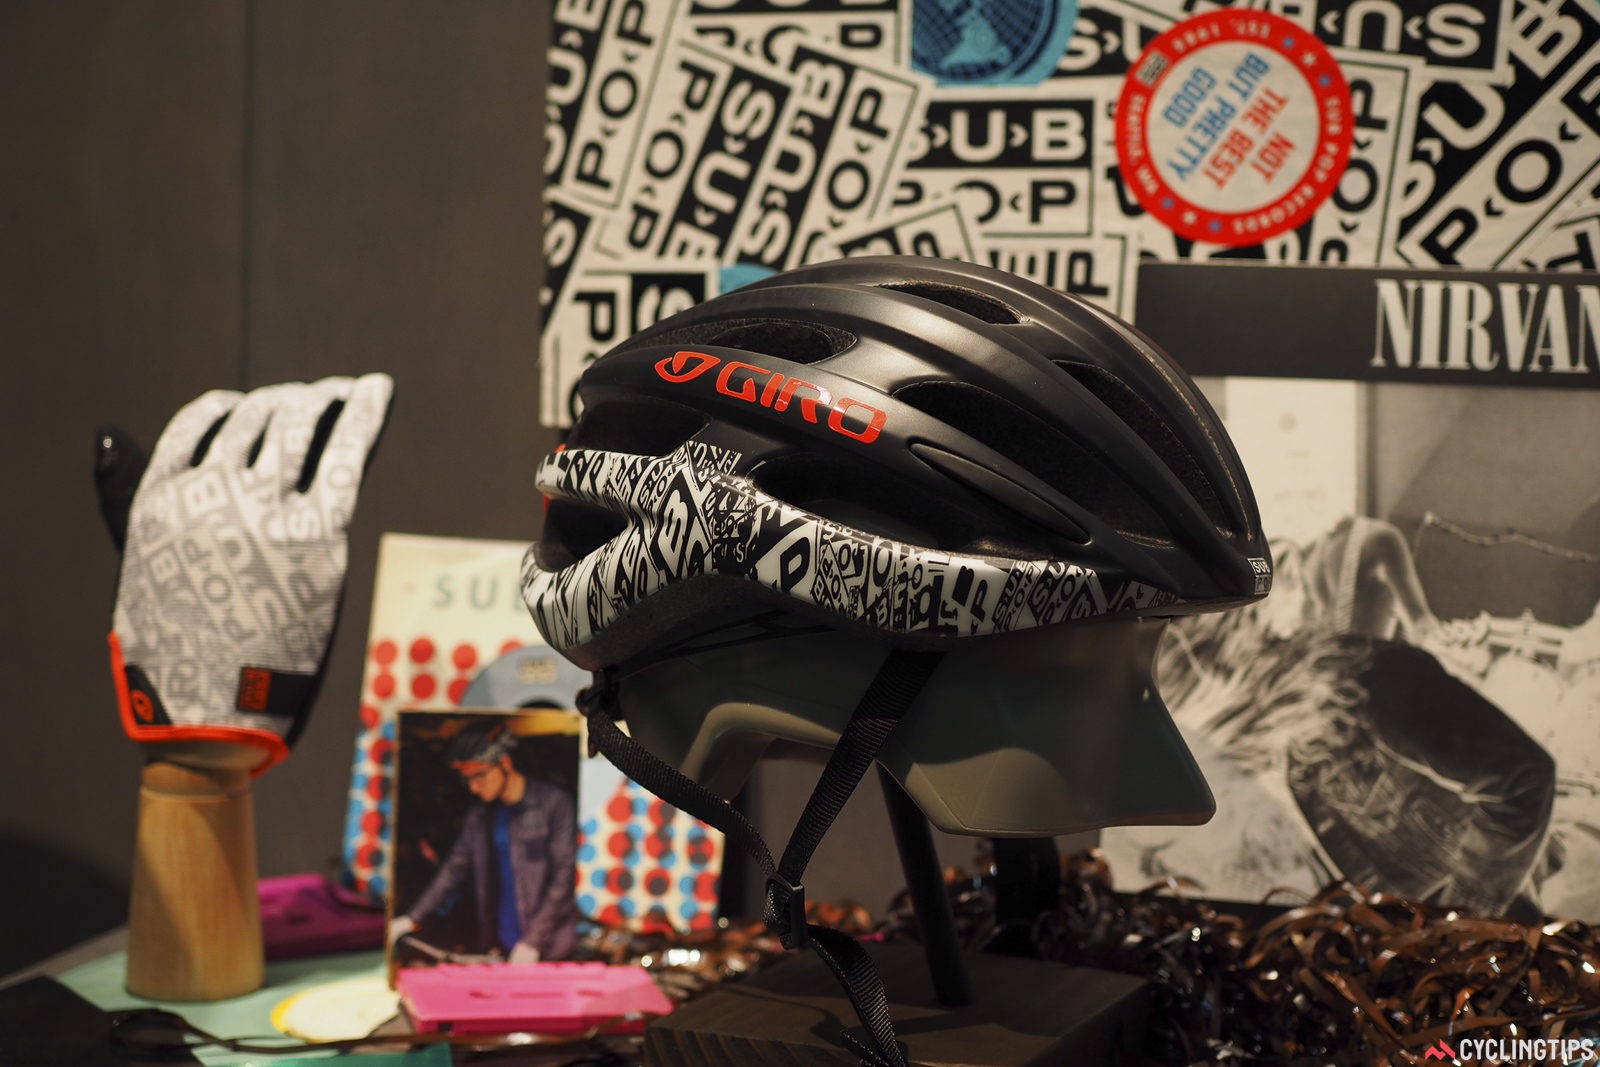 Giro's Sub Pop collection adds a bit of extra style to a few select pieces.